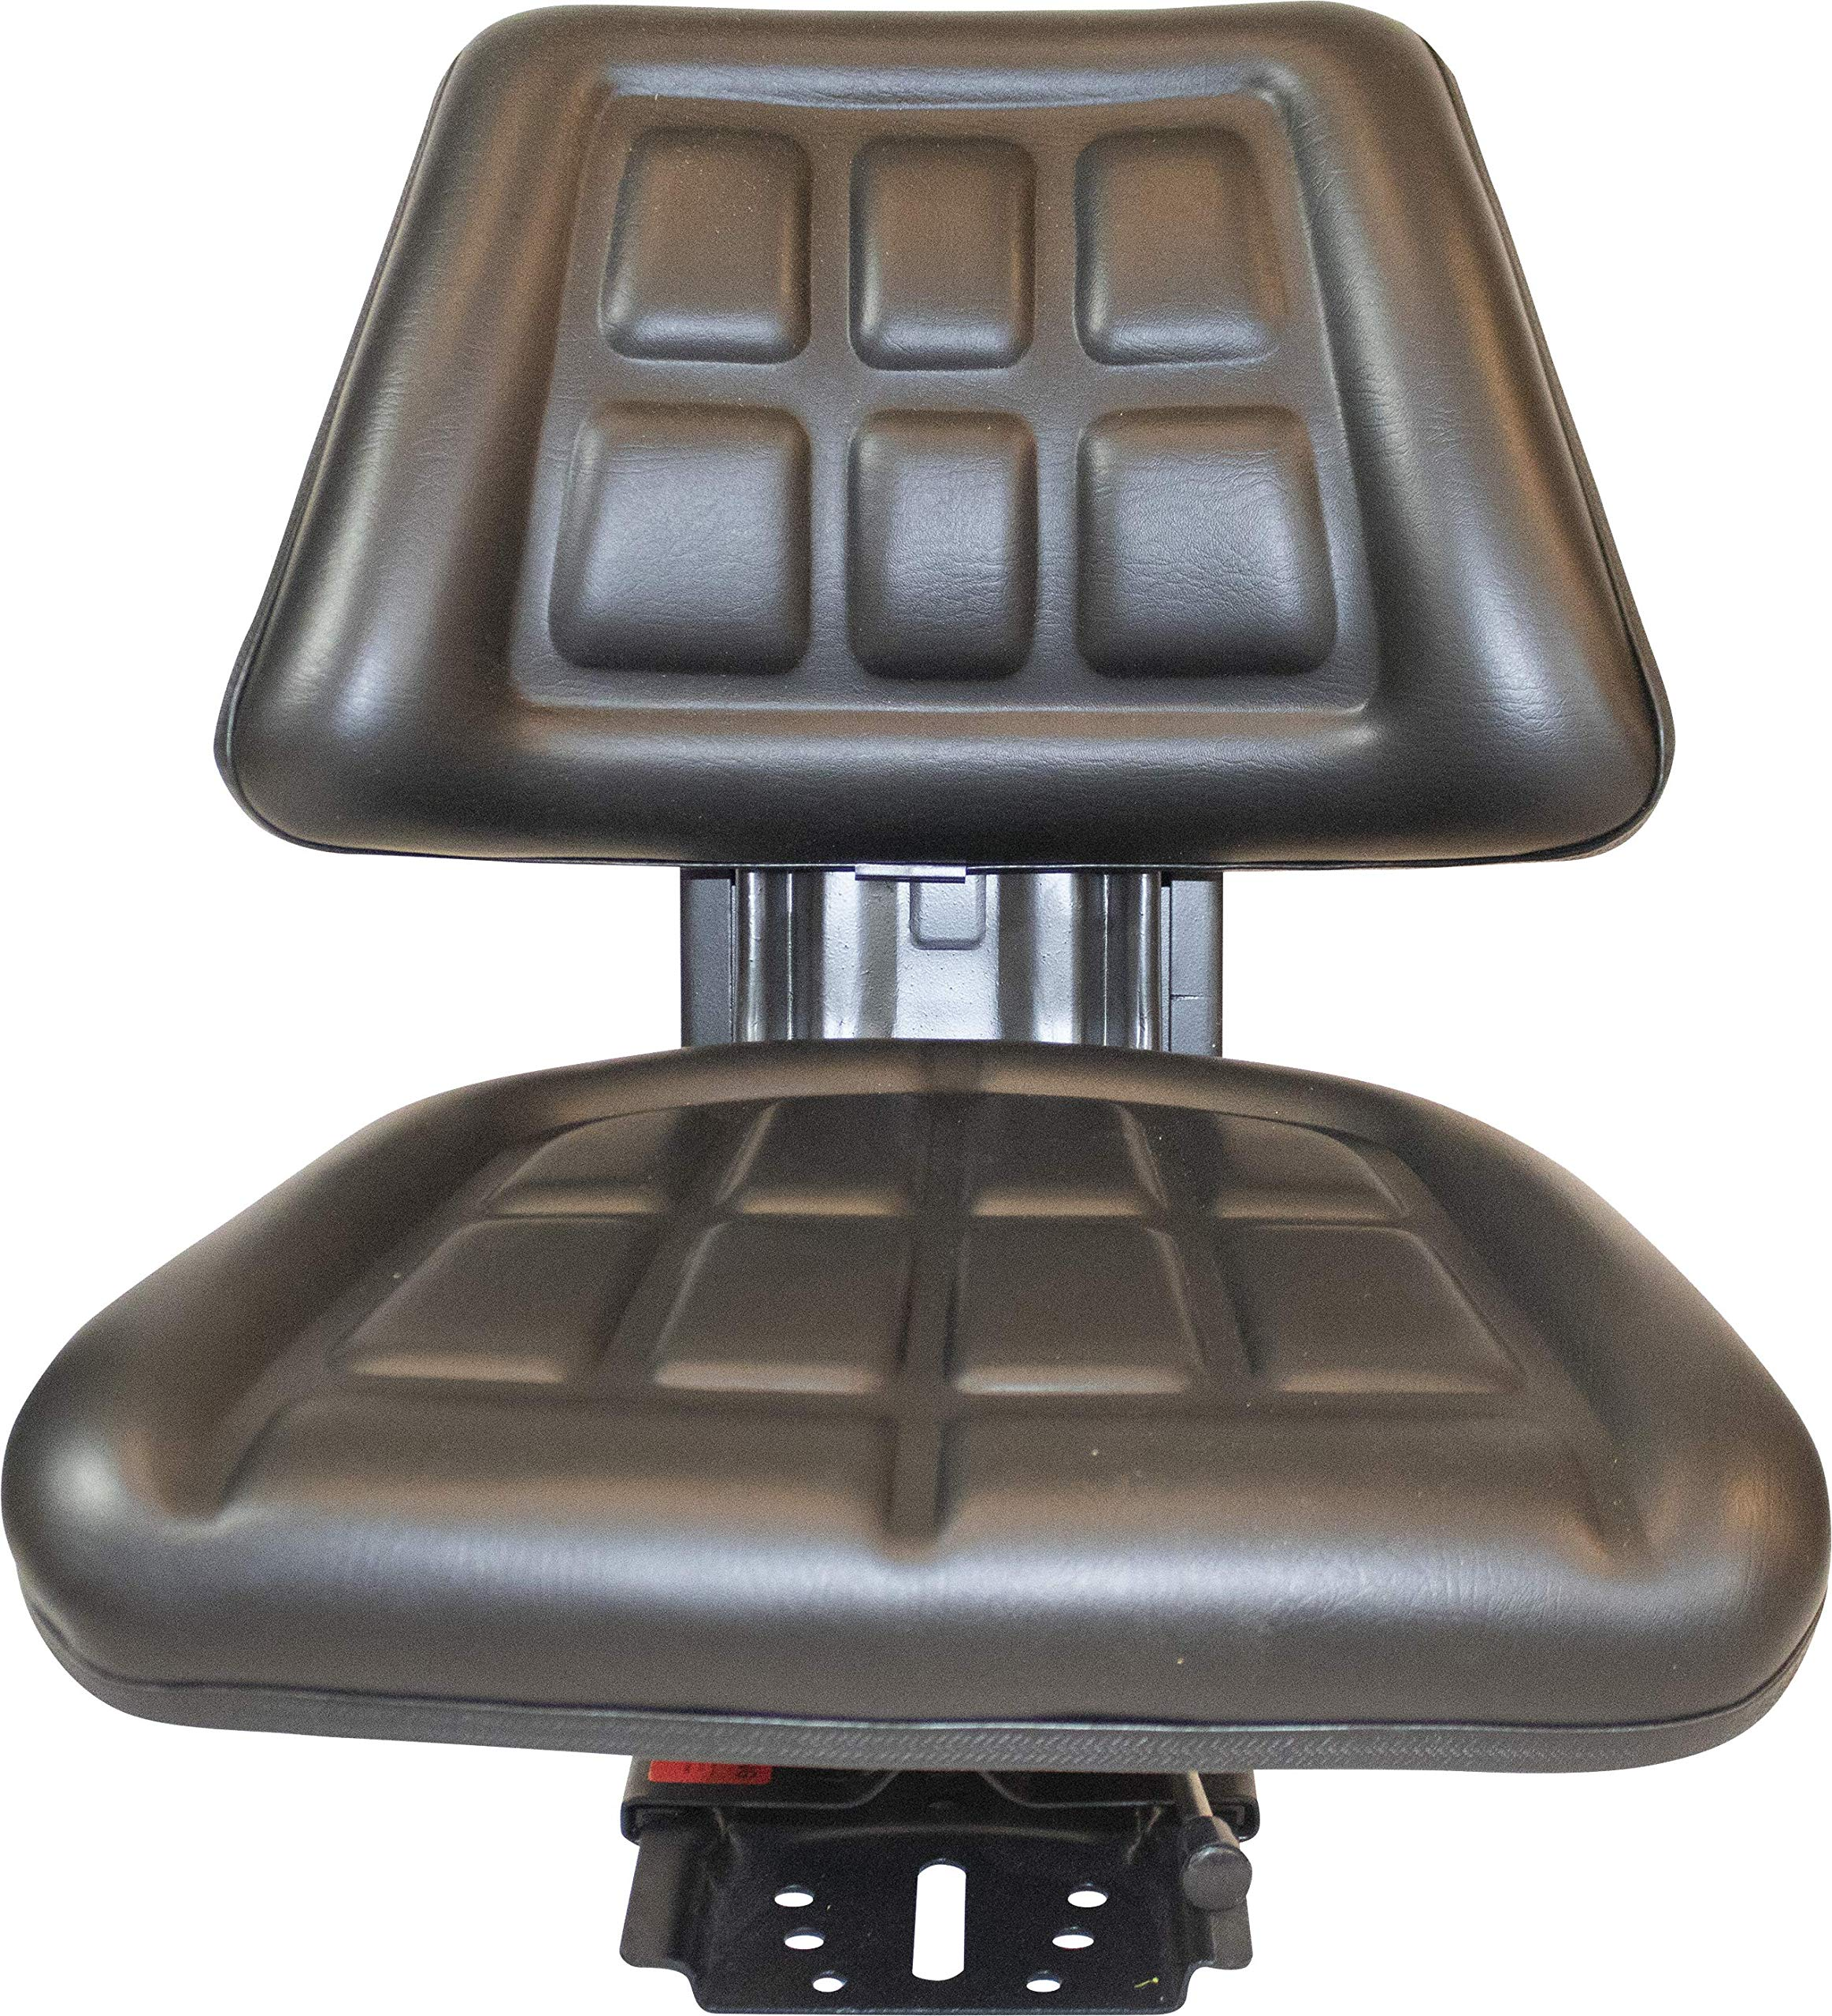 Black TRIBACK Suspension SEAT FITS Massey Ferguson 230 231 234 234H 234S 235 240 245 250 254 255 TRAC SEATS Brand (Fast Ship - Delivers in 1-4 Business Days)